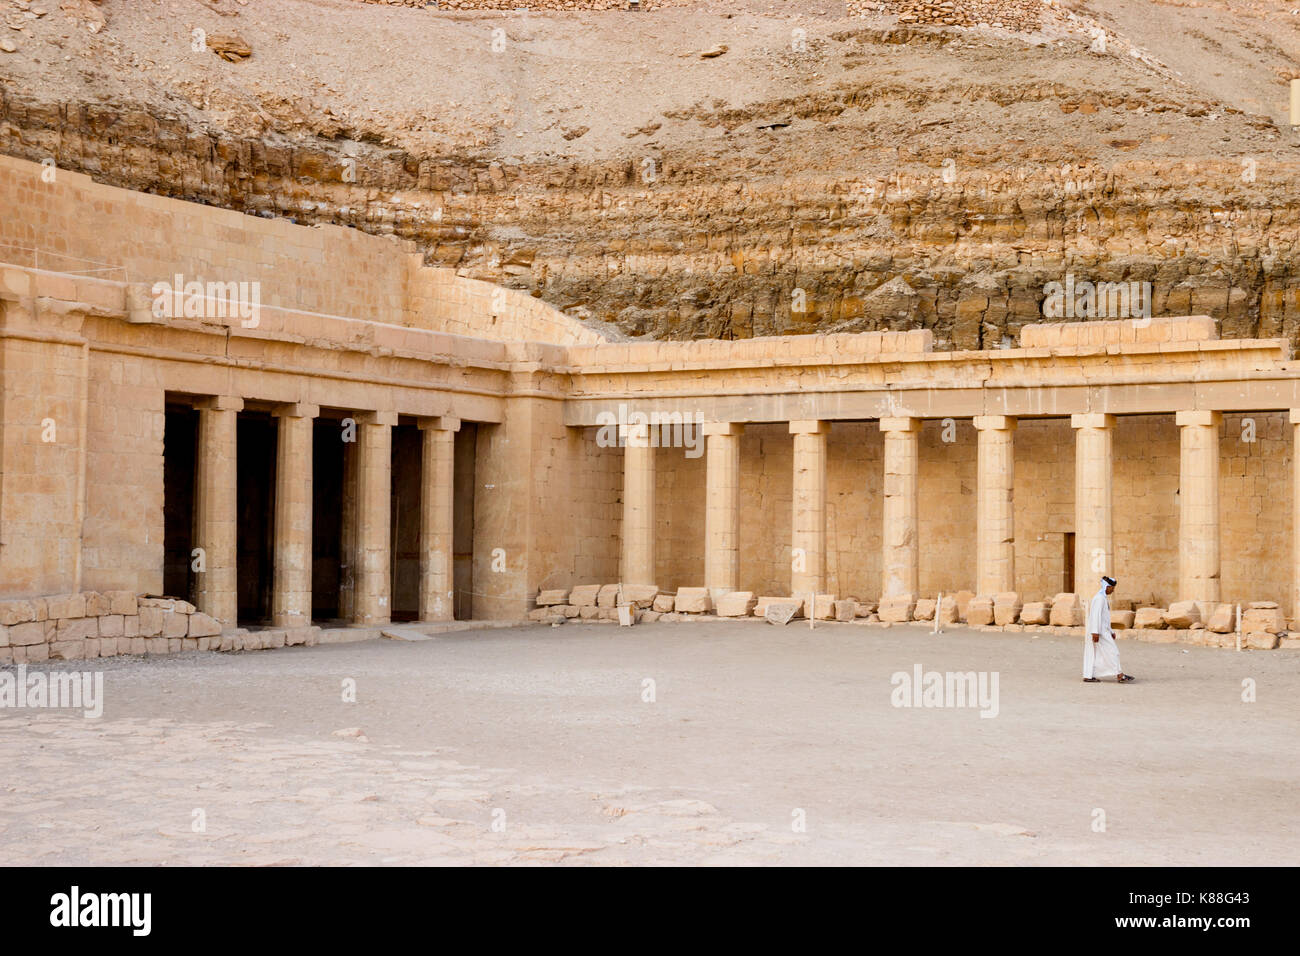 The ancient temple of Hatshepsut in Luxor, Egypt - Stock Image